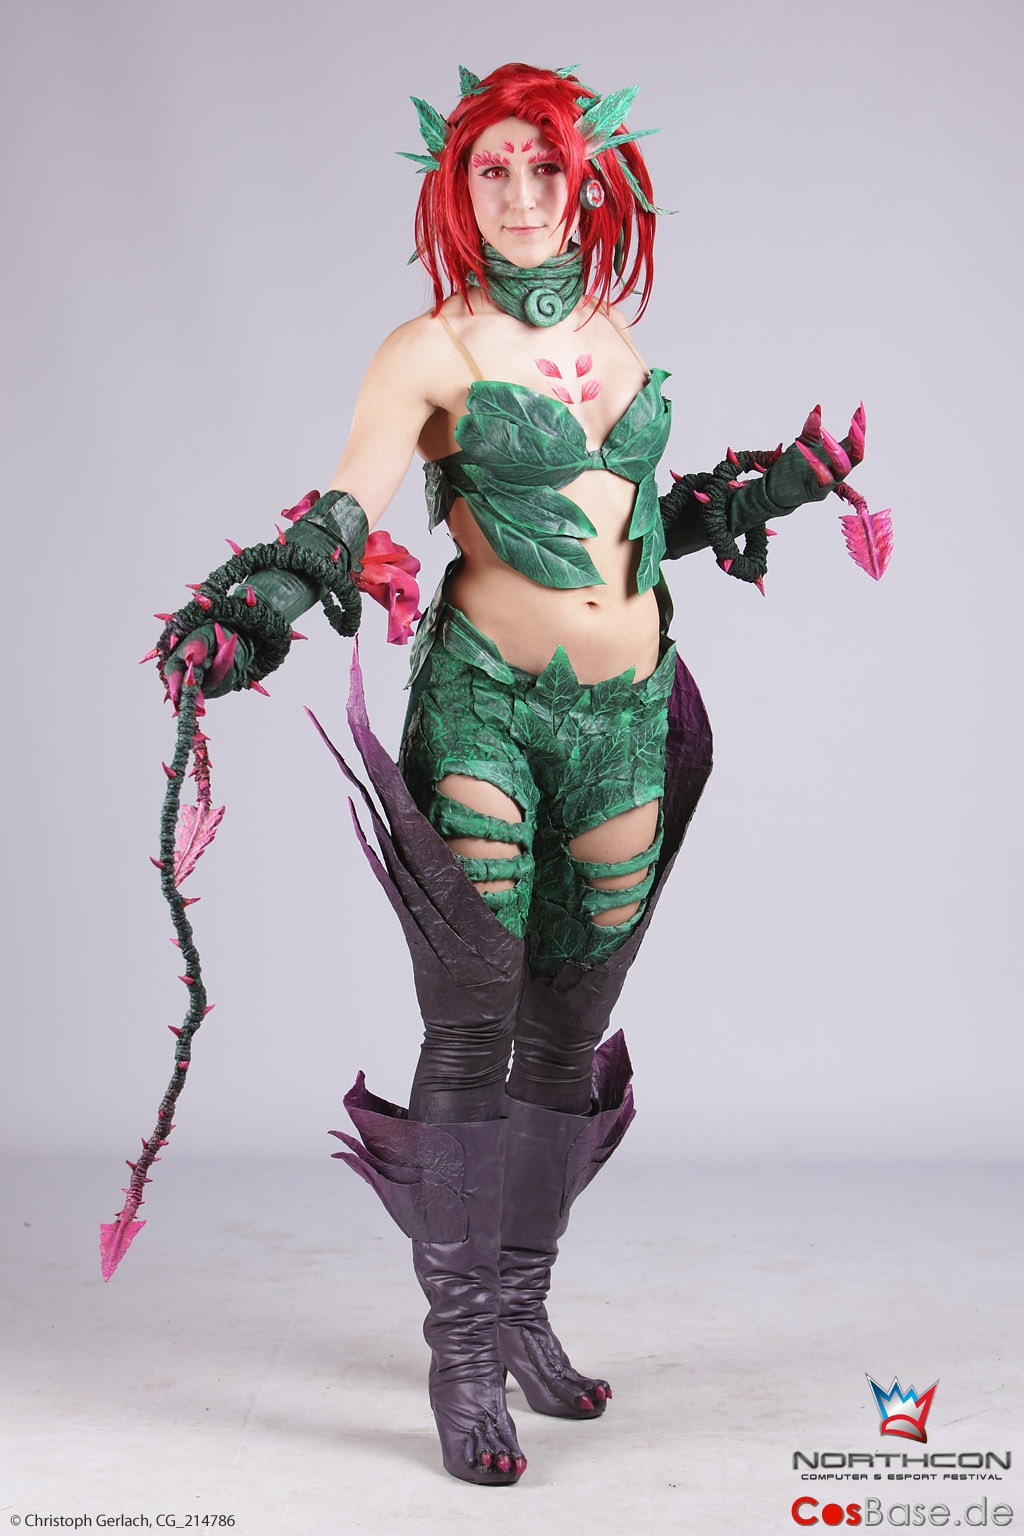 Zyra at the midlane (Northcon 2013) by MowkyCosplay on ...